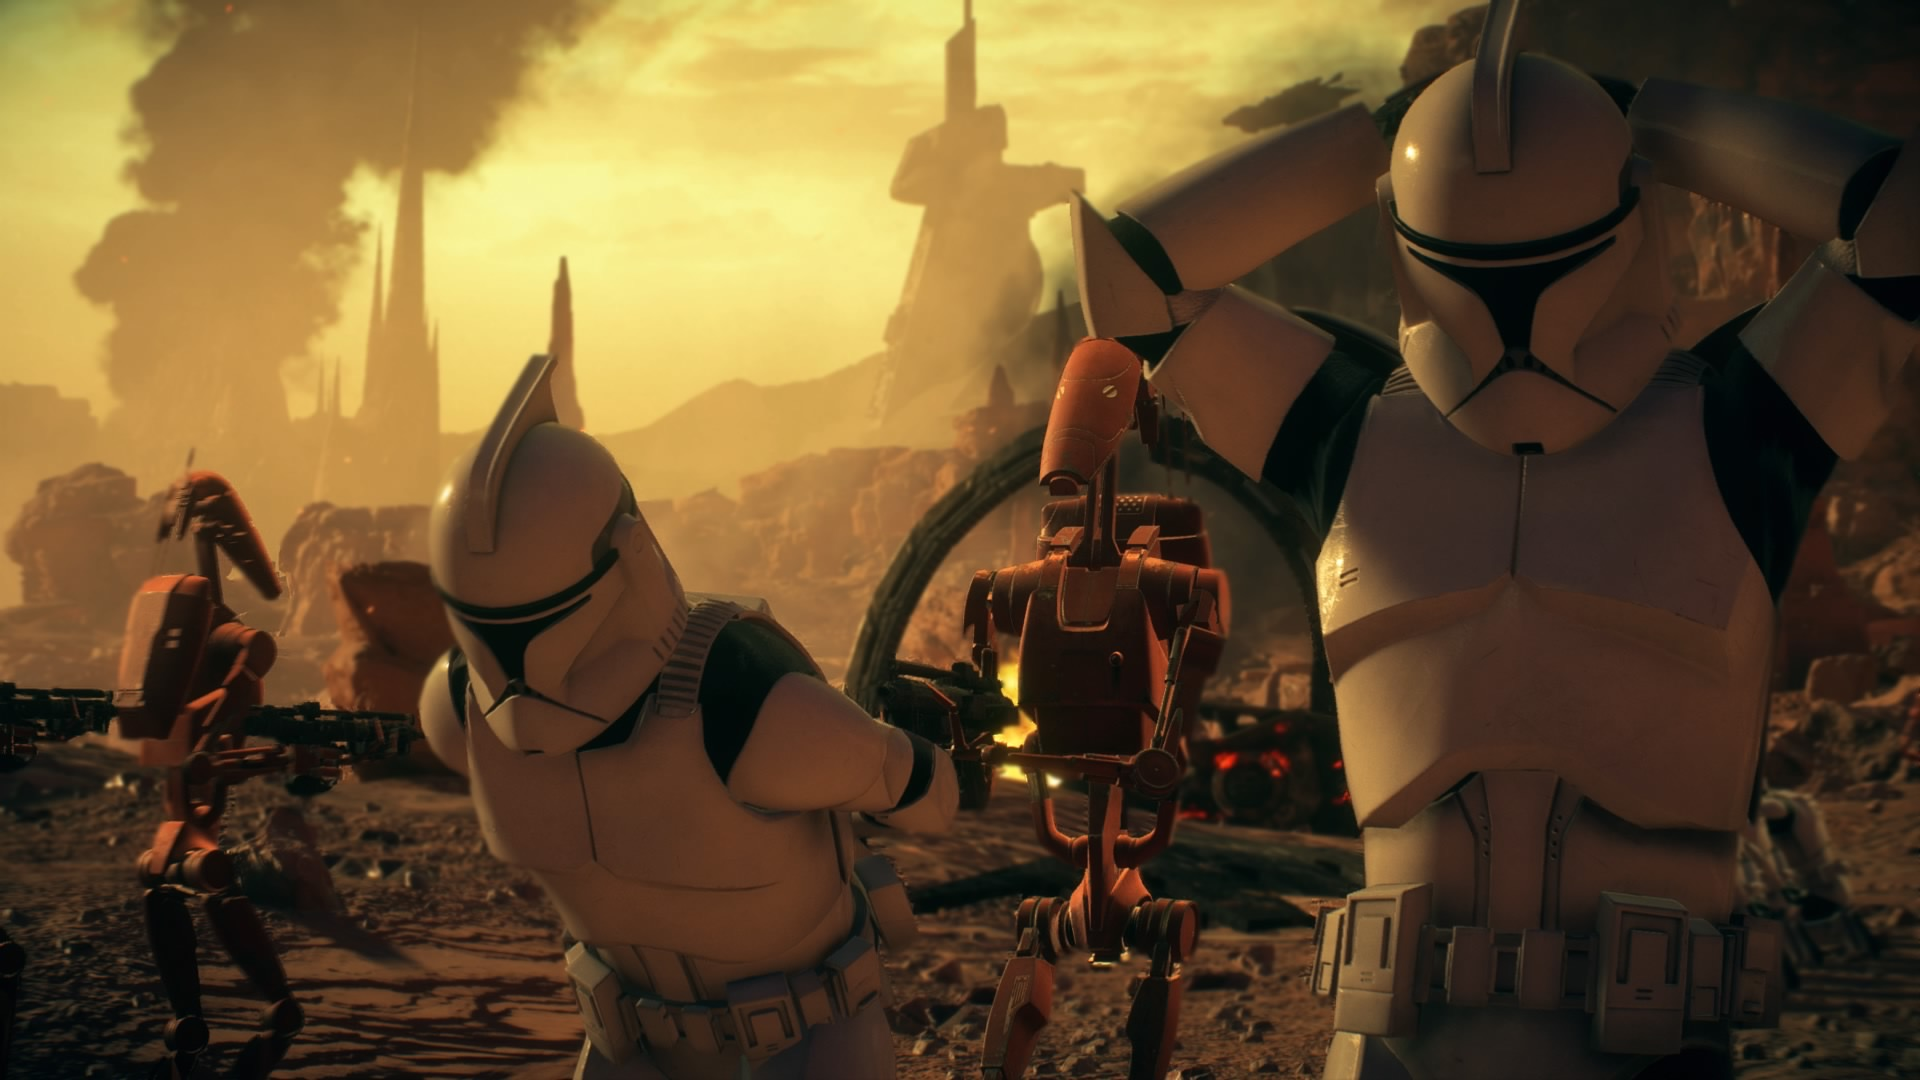 Geonosis Gets To Battlefront Ii A Supposedly Iconic Location But